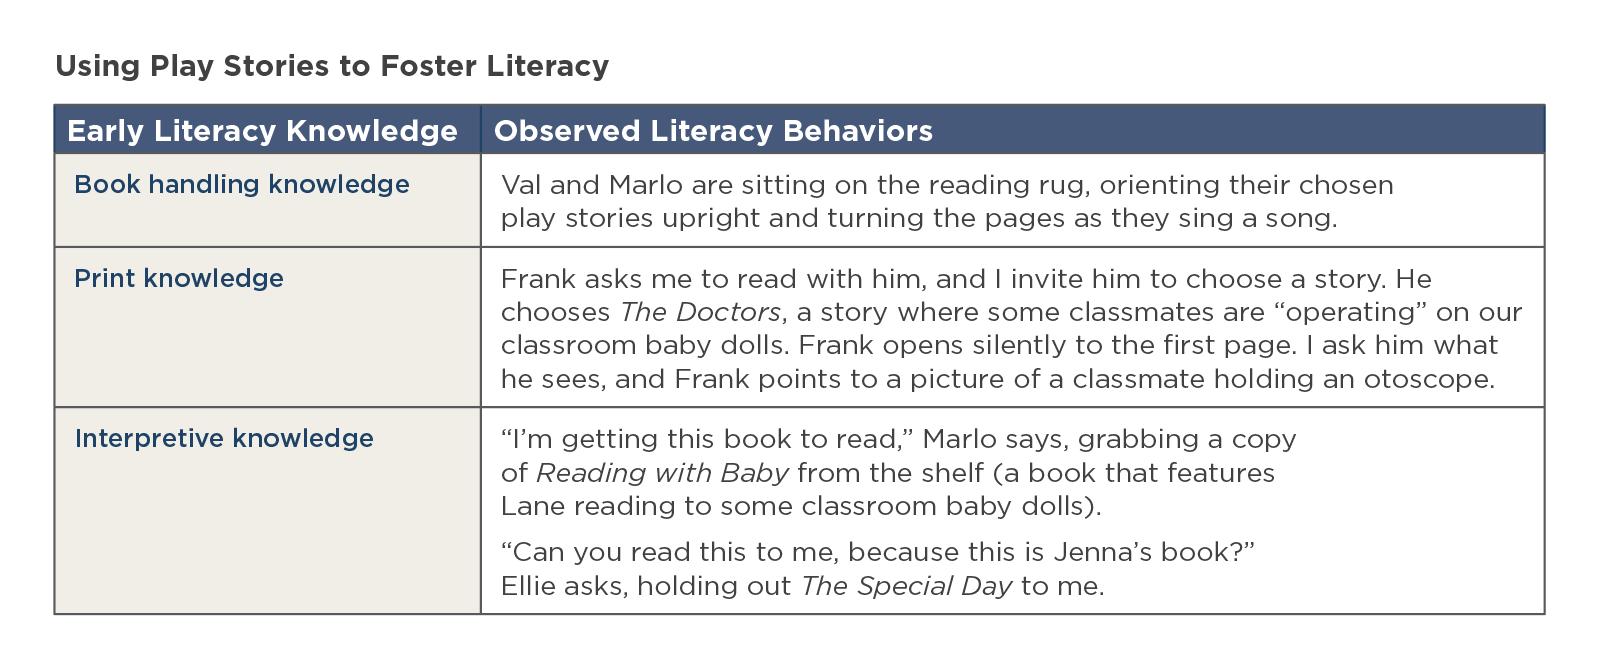 Observed literacy behaviors in very young children.